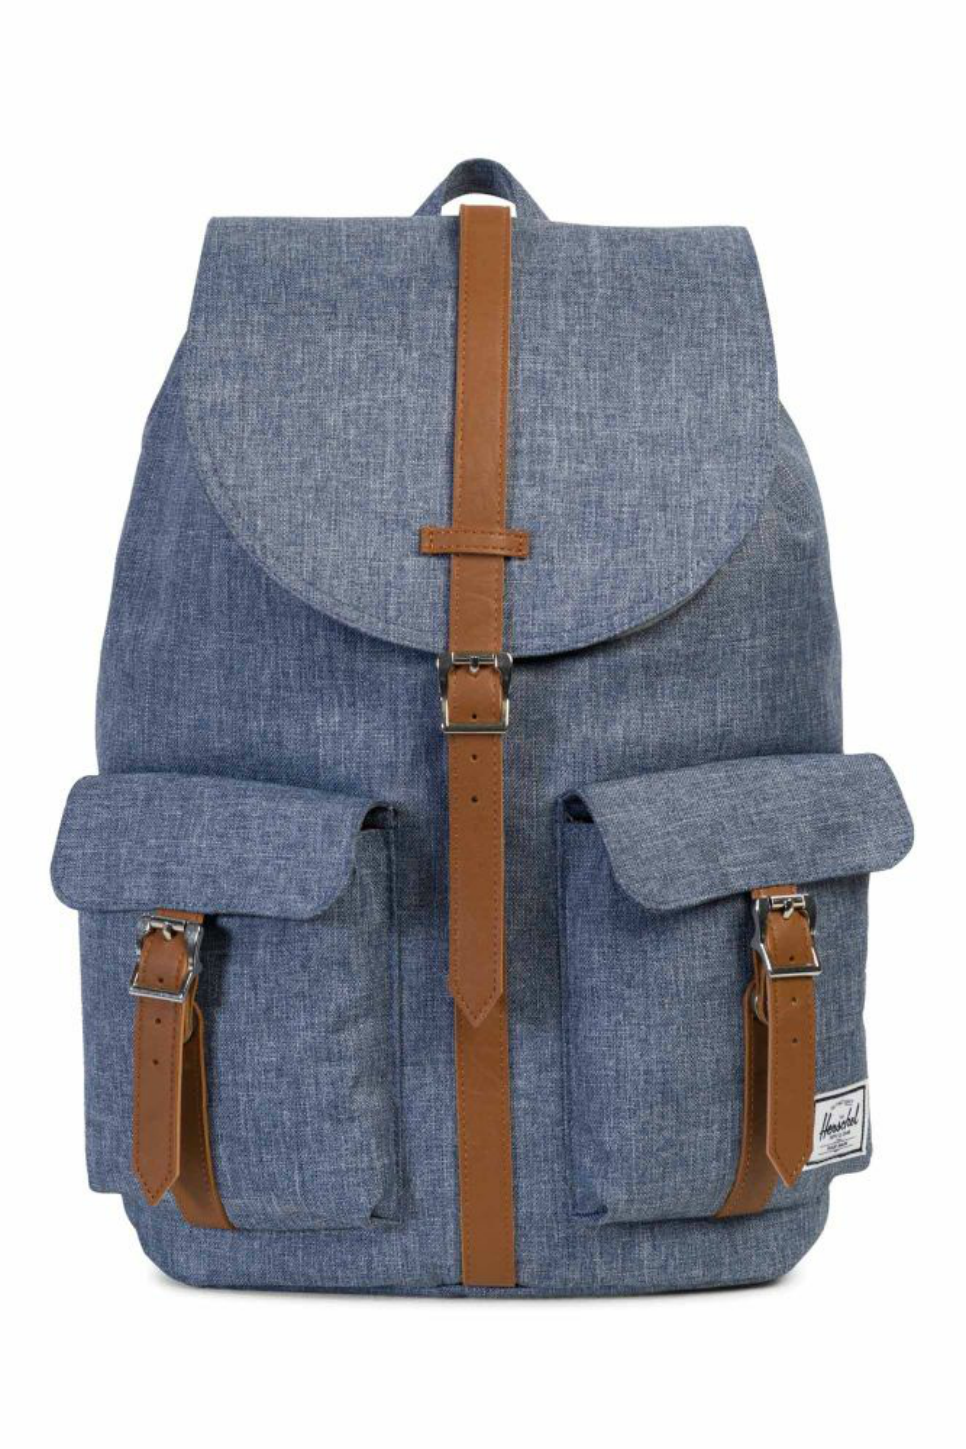 Herschel - Dawson Backpack - Dark Chambray Crosshatch/Tan - Front